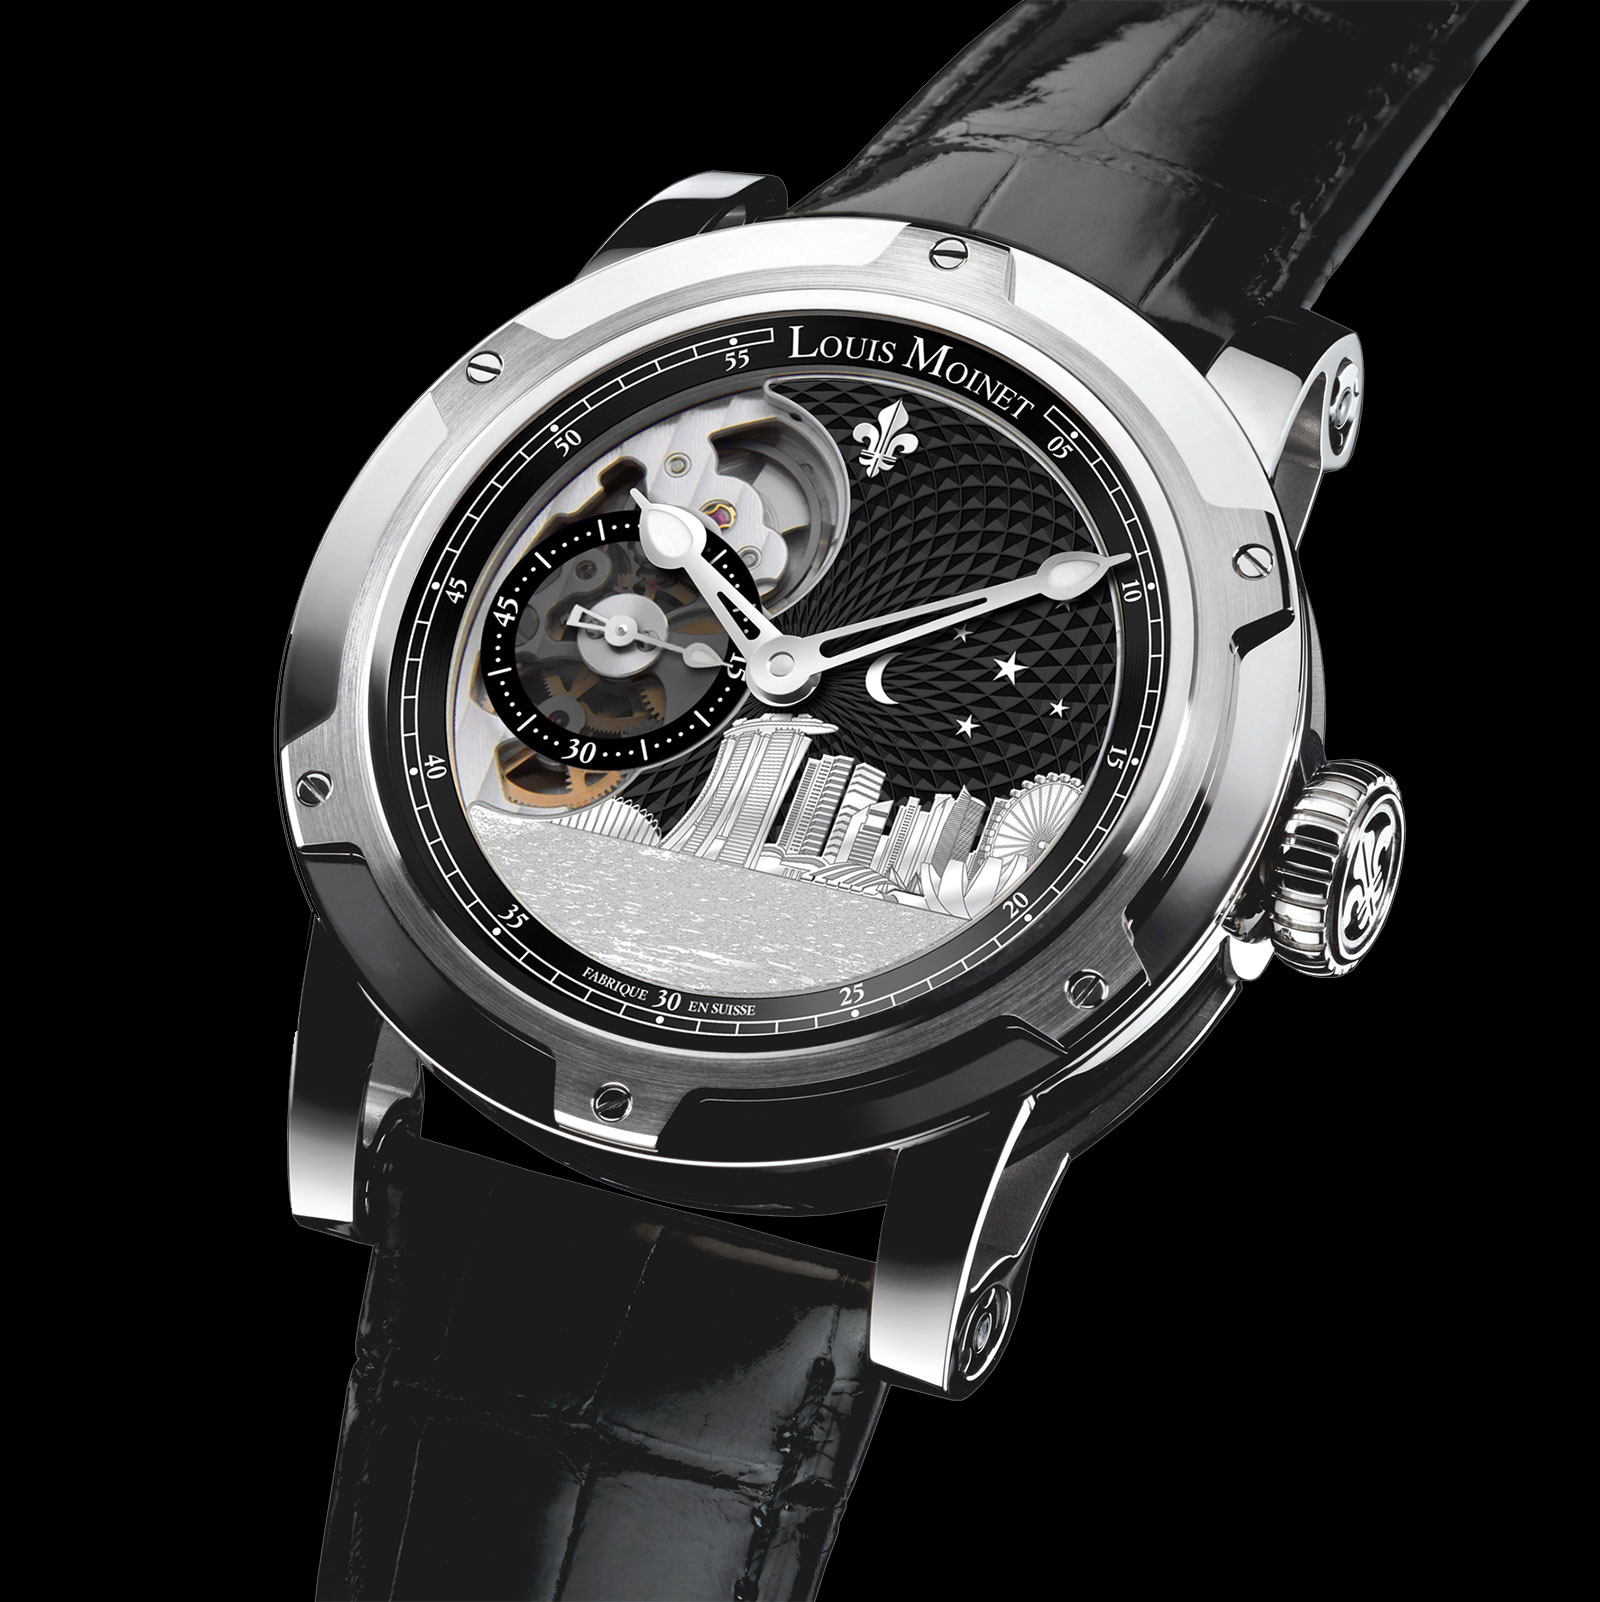 Louis Moinet Singapore Edition watch 2